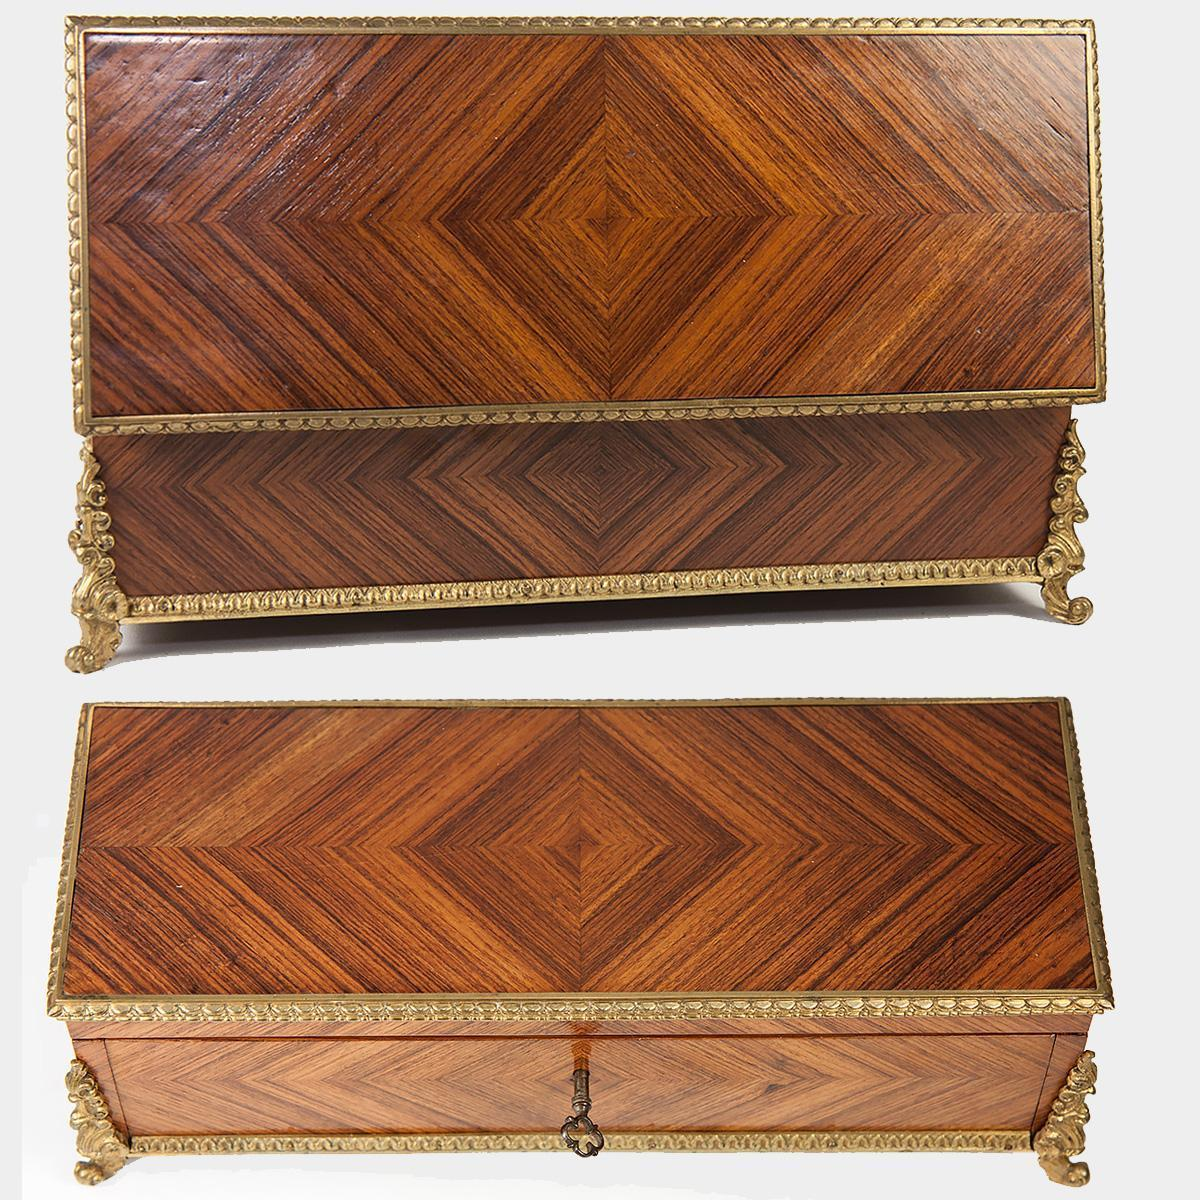 Antique French Kingwood Gloves, Desktop or Jewelry, Documents Box, Casket, Parquet Work